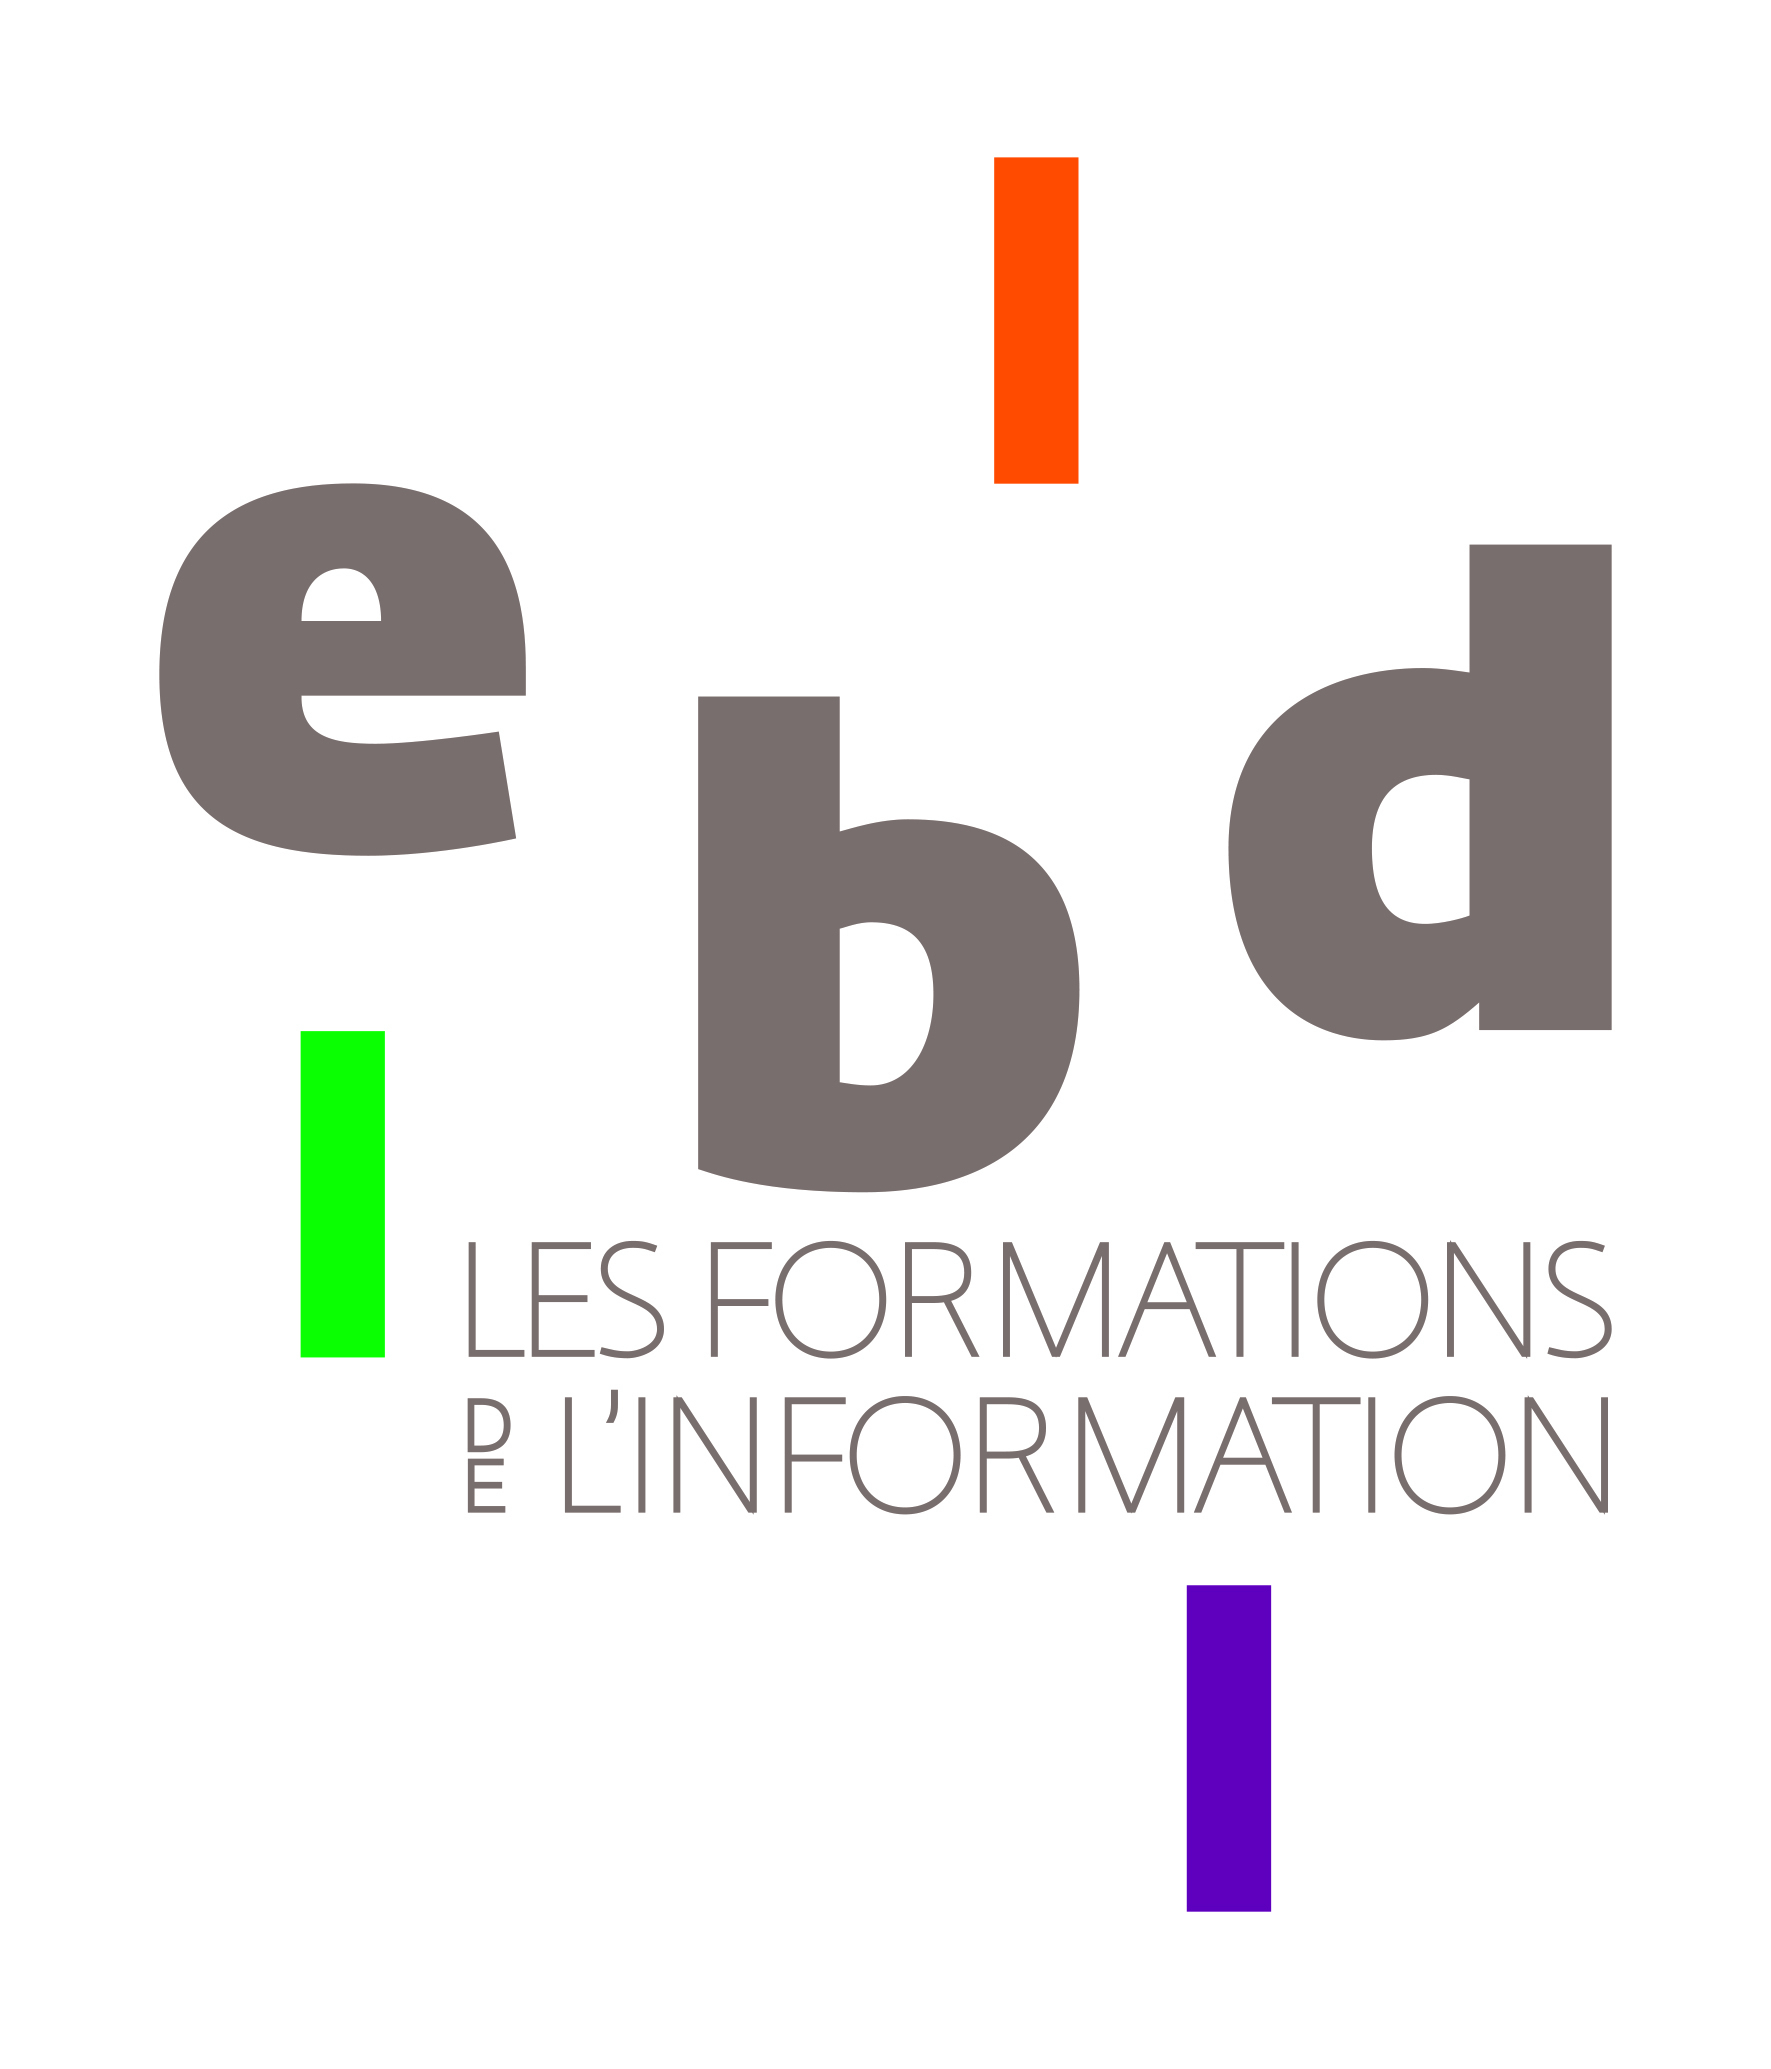 EBDformation_clrs_fond.indd